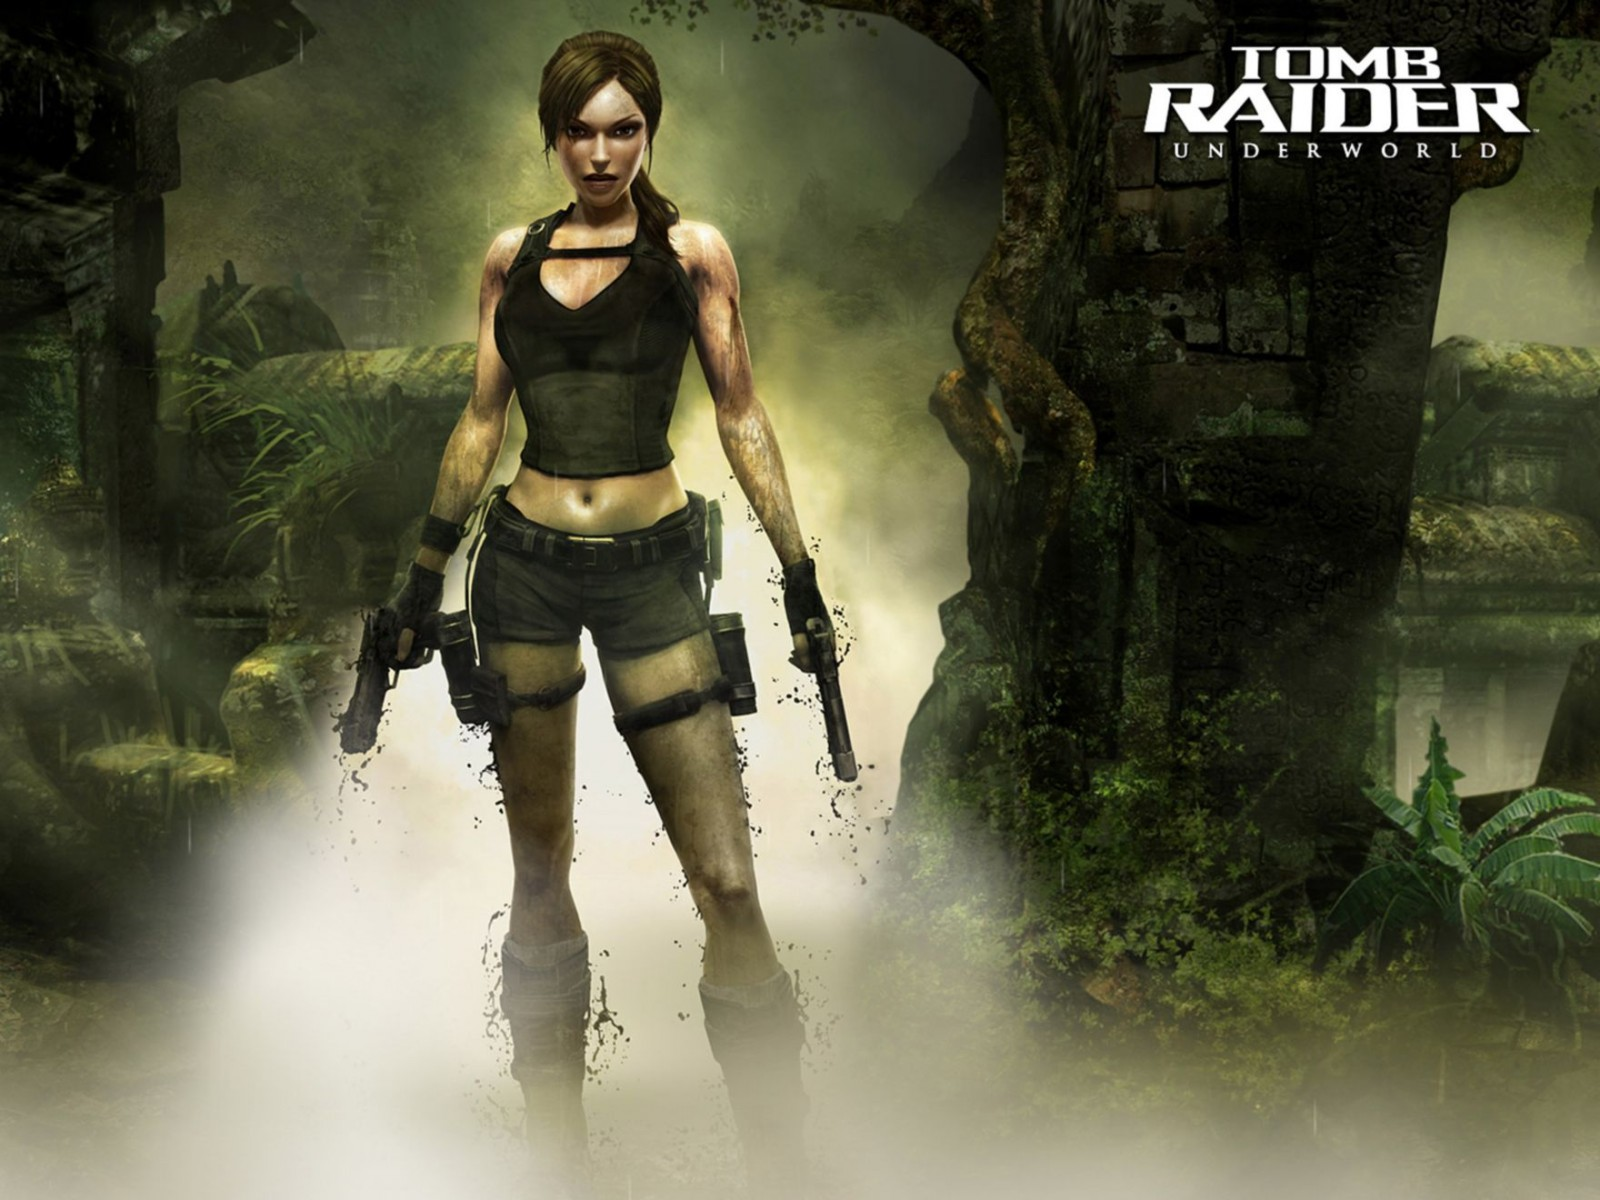 Tomb Raider Underworld 2 Normal Wallpaper